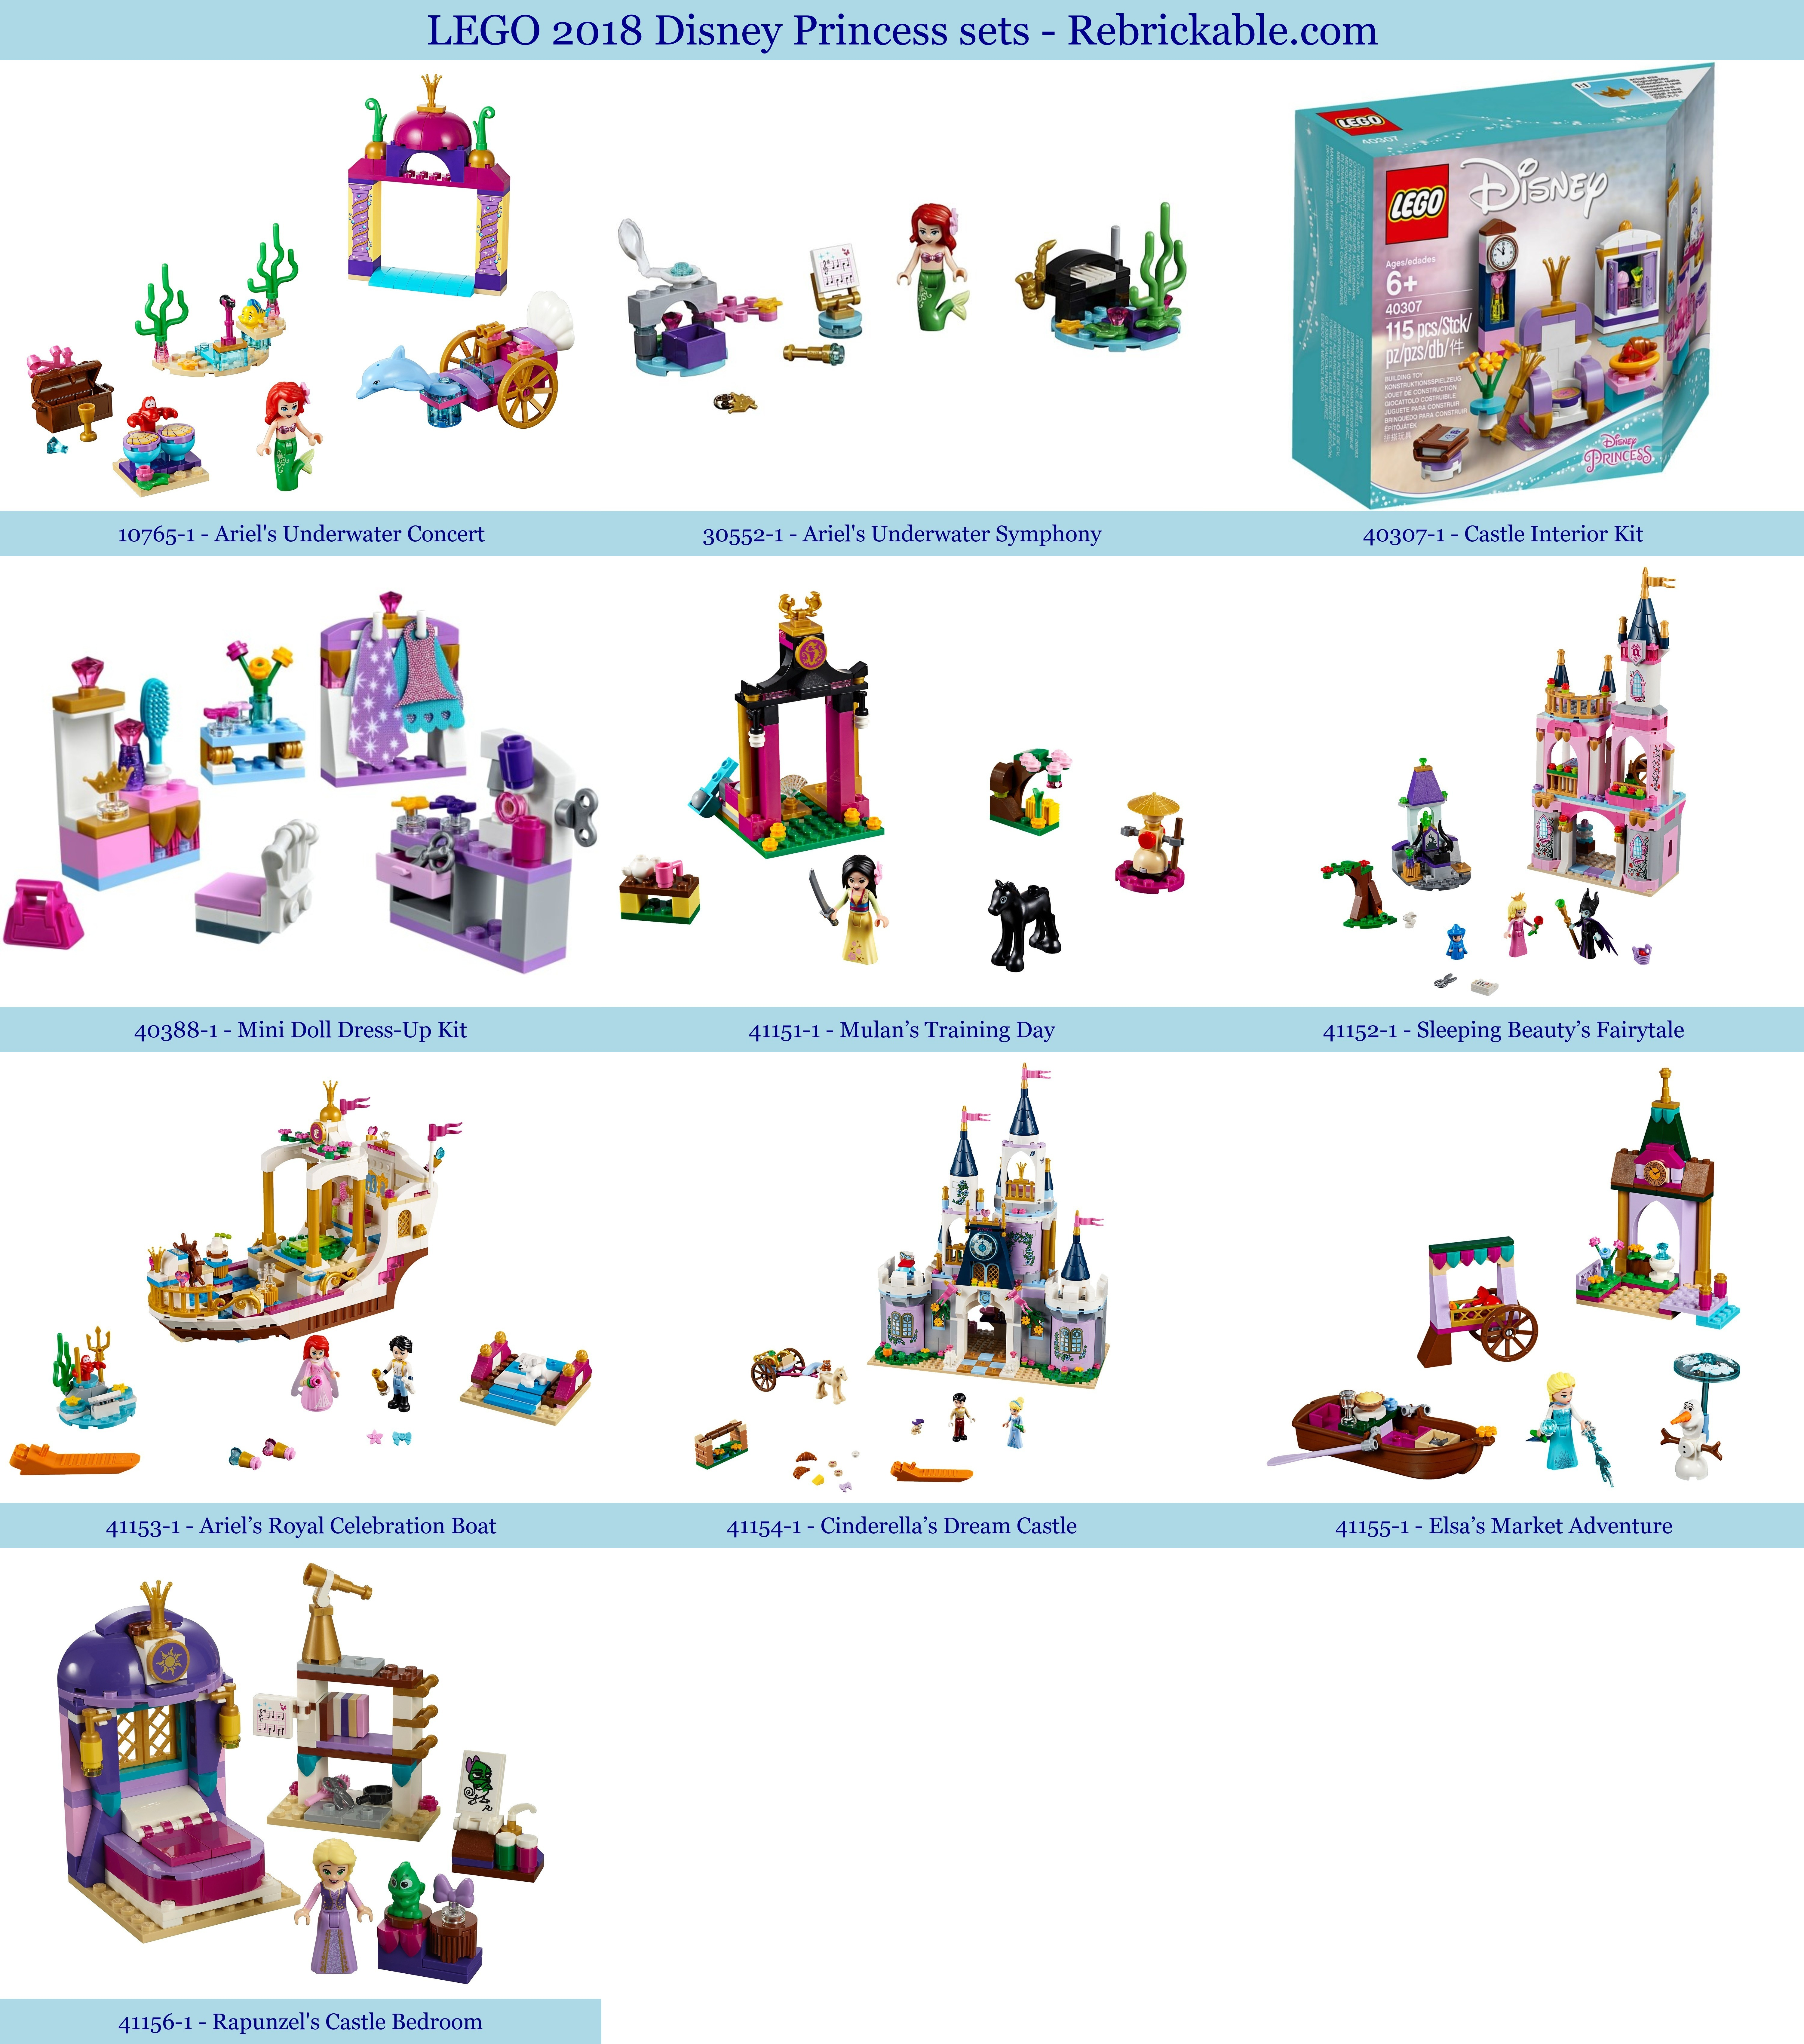 New 2018 LEGO Sets | Rebrickable - Build with LEGO